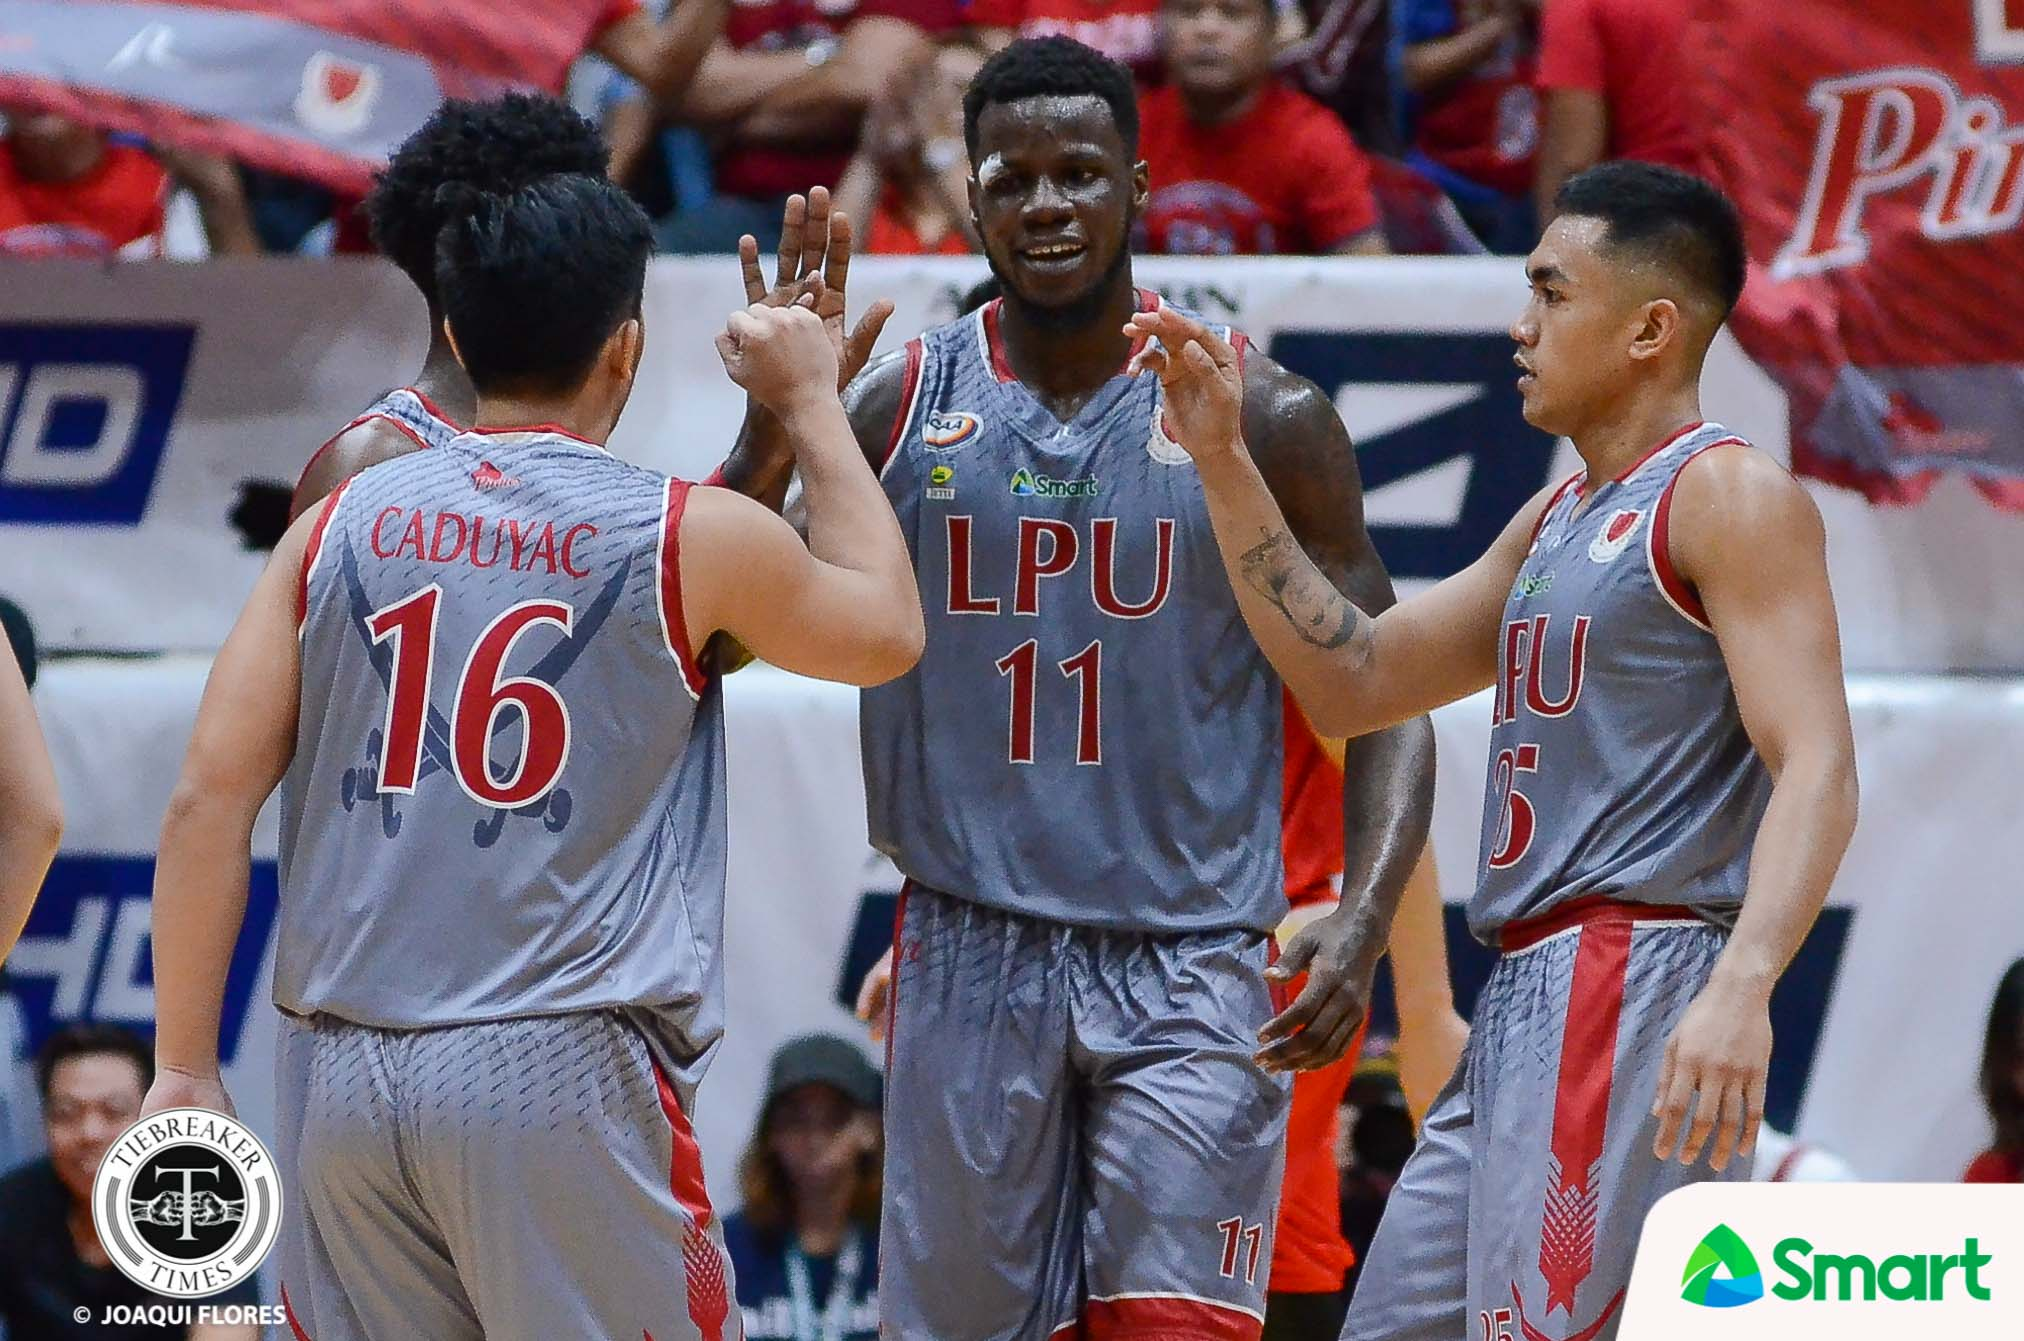 Philippine Sports News - Tiebreaker Times Lyceum completes historic sweep to advance to Finals Basketball LPU NCAA News SBC  Topex Robinson San Beda Seniors Basketball Robert Bolick NCAA Season 93 Seniors Basketball NCAA Season 93 Mike Nzeusseu Lyceum Seniors Basketball Javee Mocon Donald Tankoua Clint Doliguez CJ Perez Boyet Fernandez